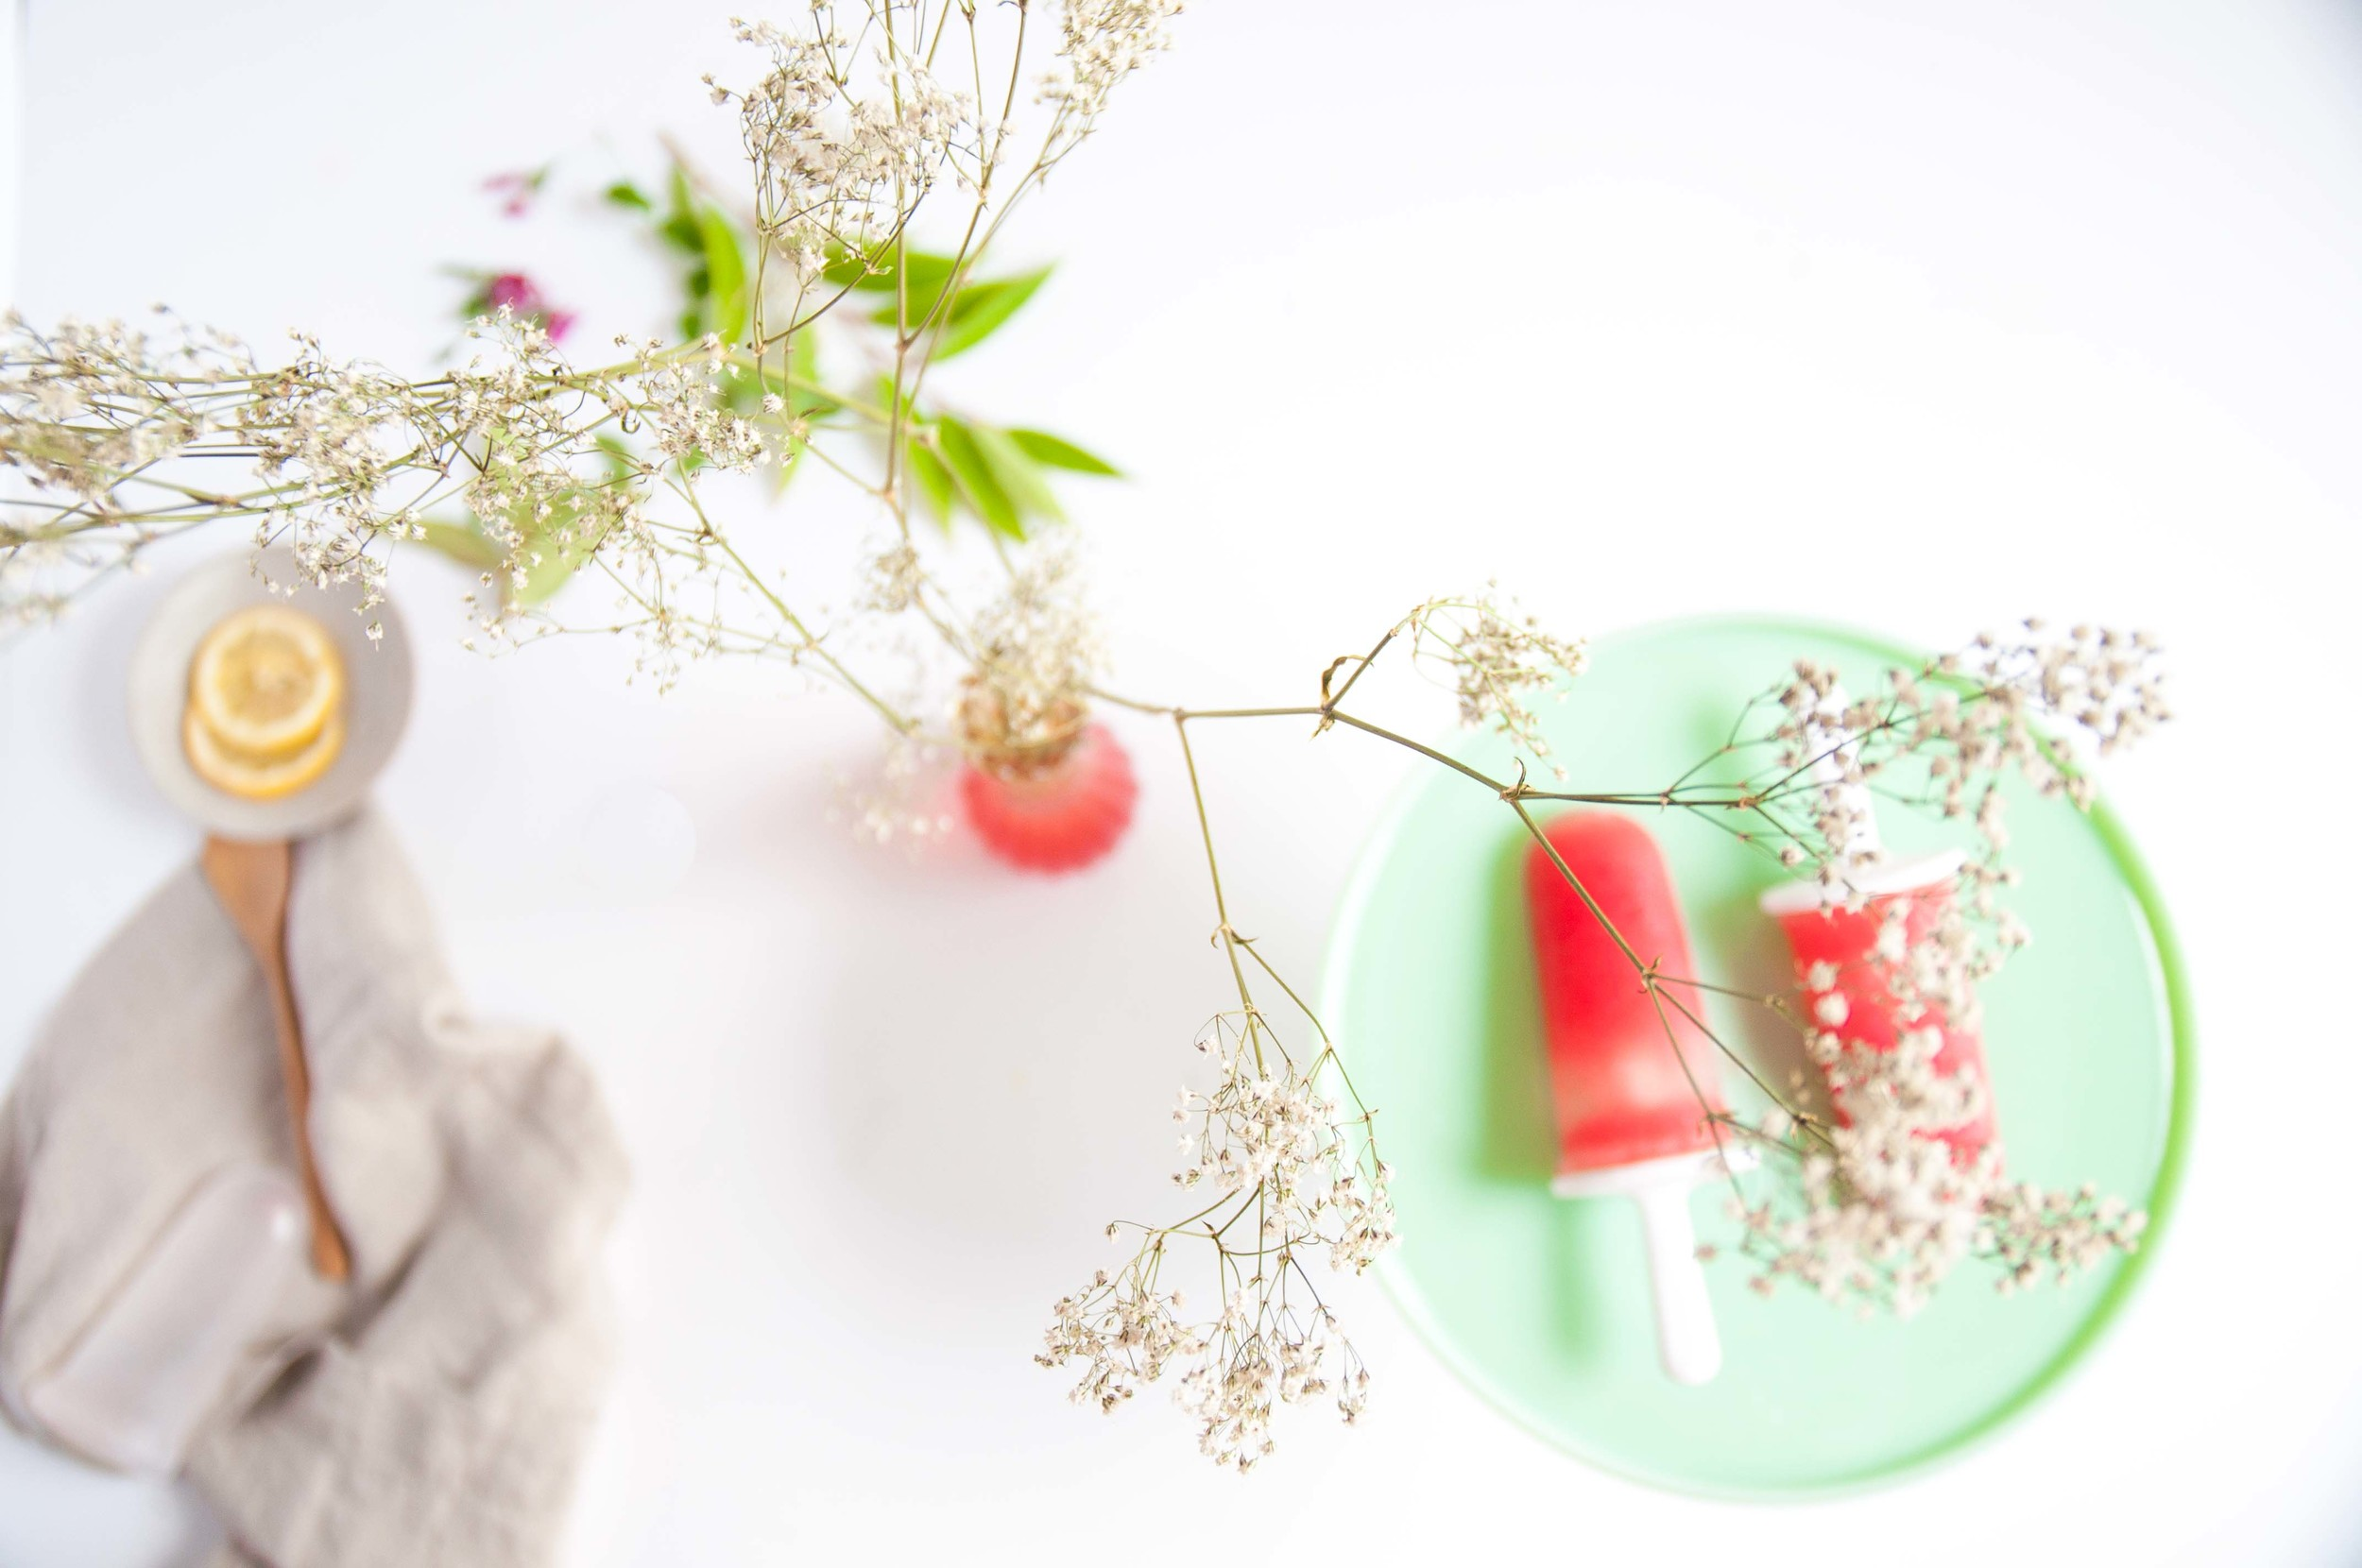 watermelon-sake-popsicles-fried-parsley